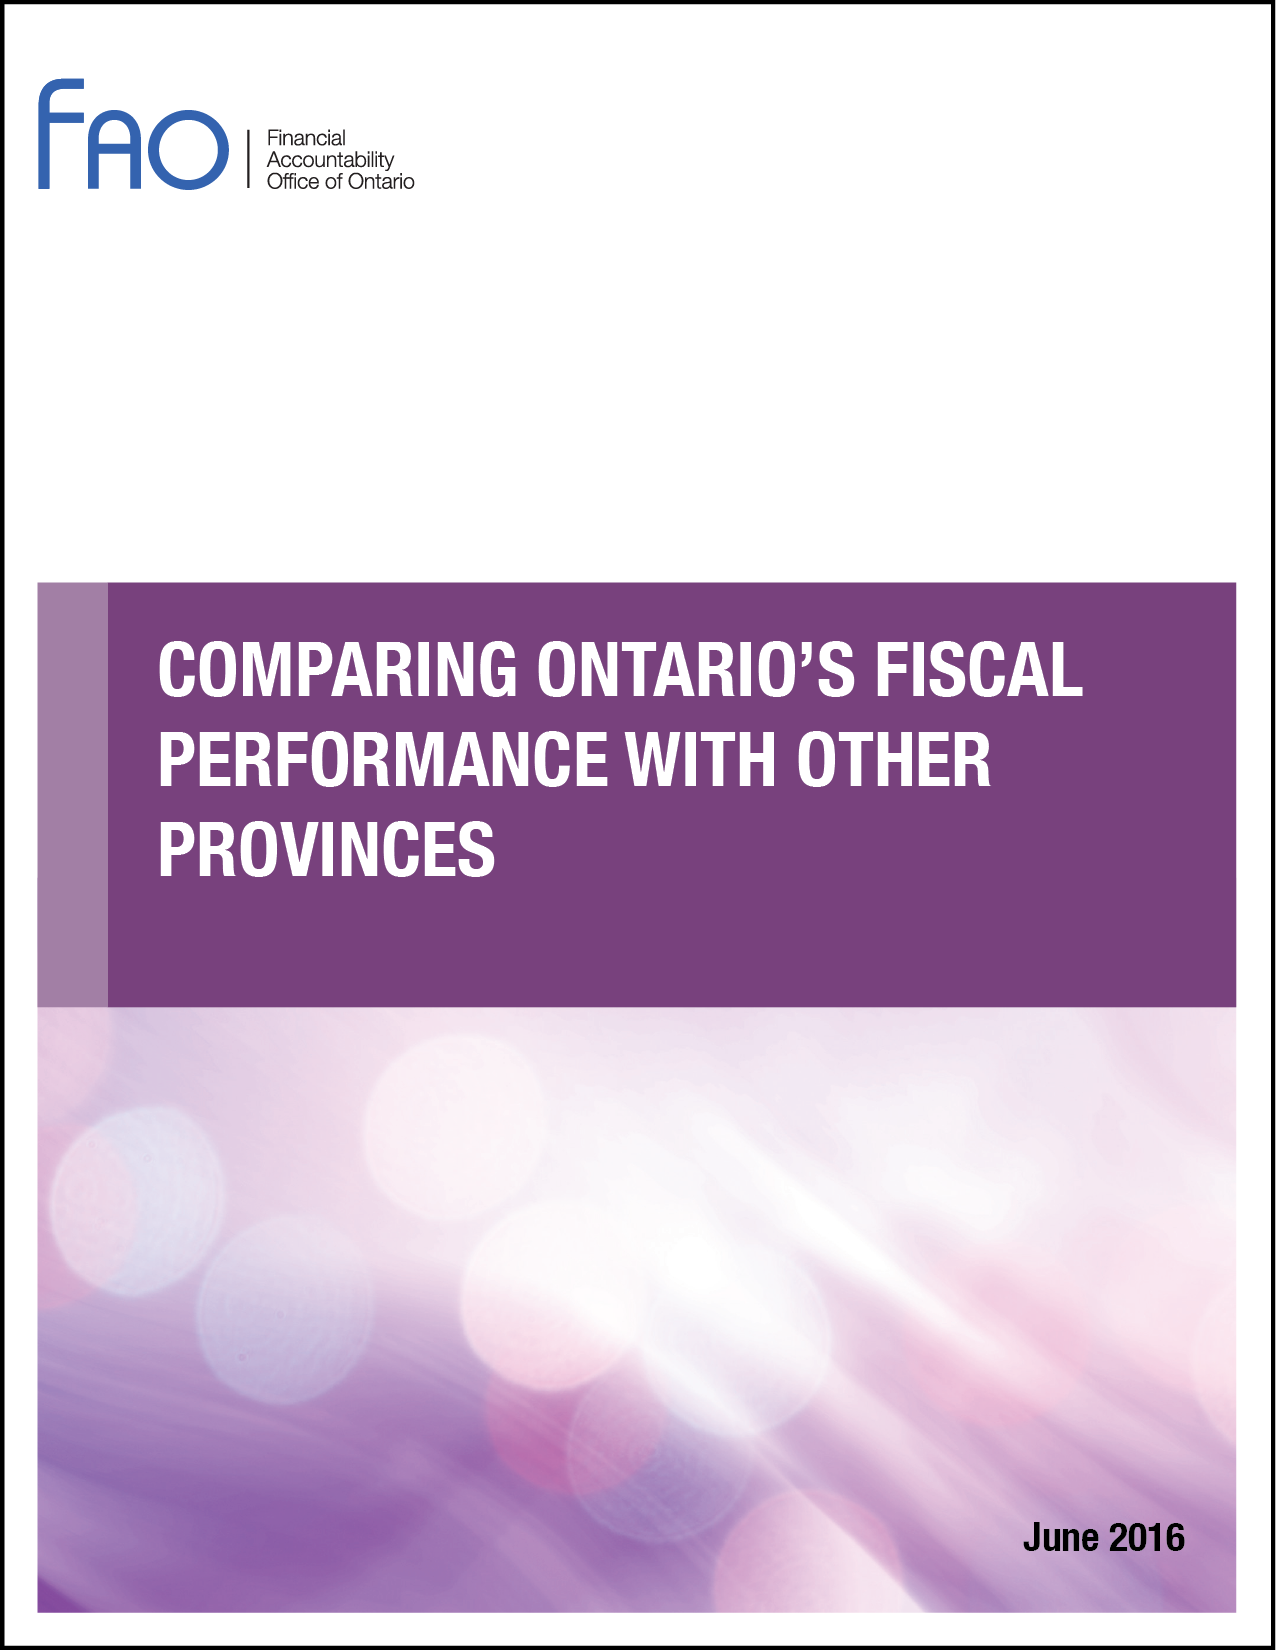 Comparing Ontario's Fiscal Performance with Other Provinces